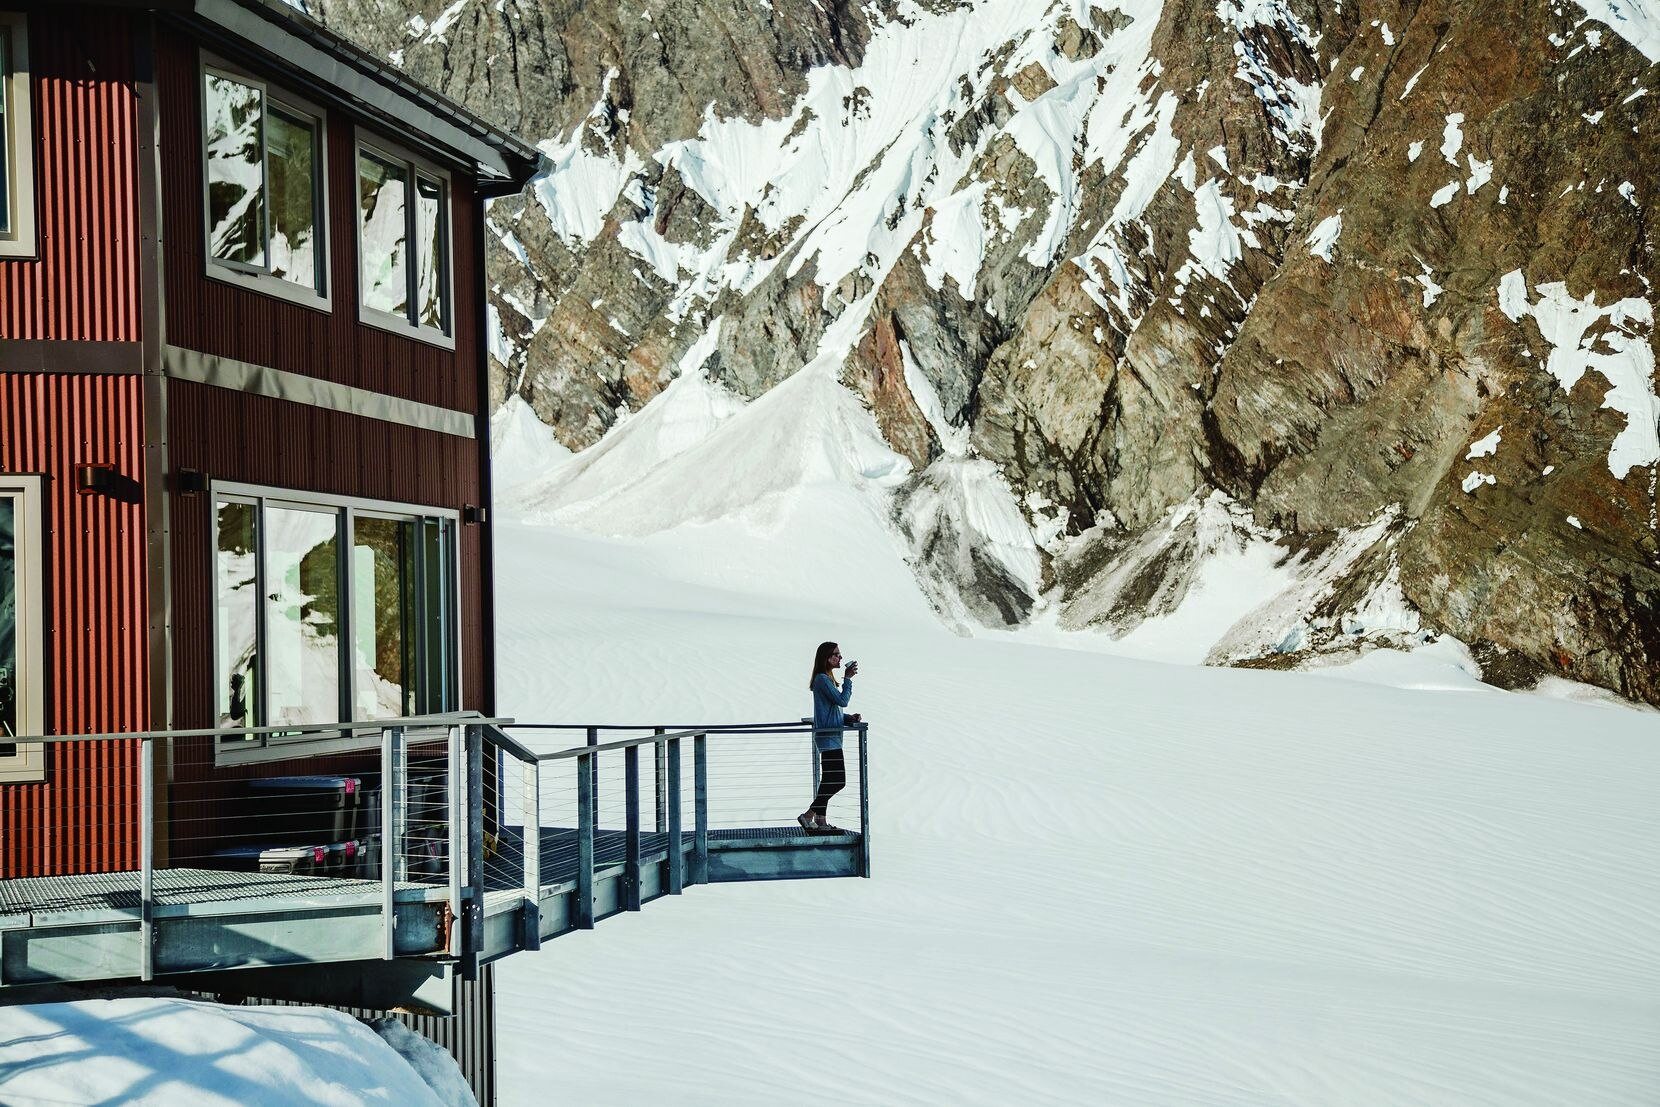 More than 70 years ago, while mapping the Alaska Range, pilot Don Sheldon discovered this remote location. He built the Sheldon Mountain House in 1966. A new building was added by his children in 2018, using Don s original plans, which envisioned a bold monument, a haven among the peaks, just 10 miles from Denali's summit. A trip to the chalet is a $345,000 fantasy gift in the Neiman Marcus Christmas Book in 2020.